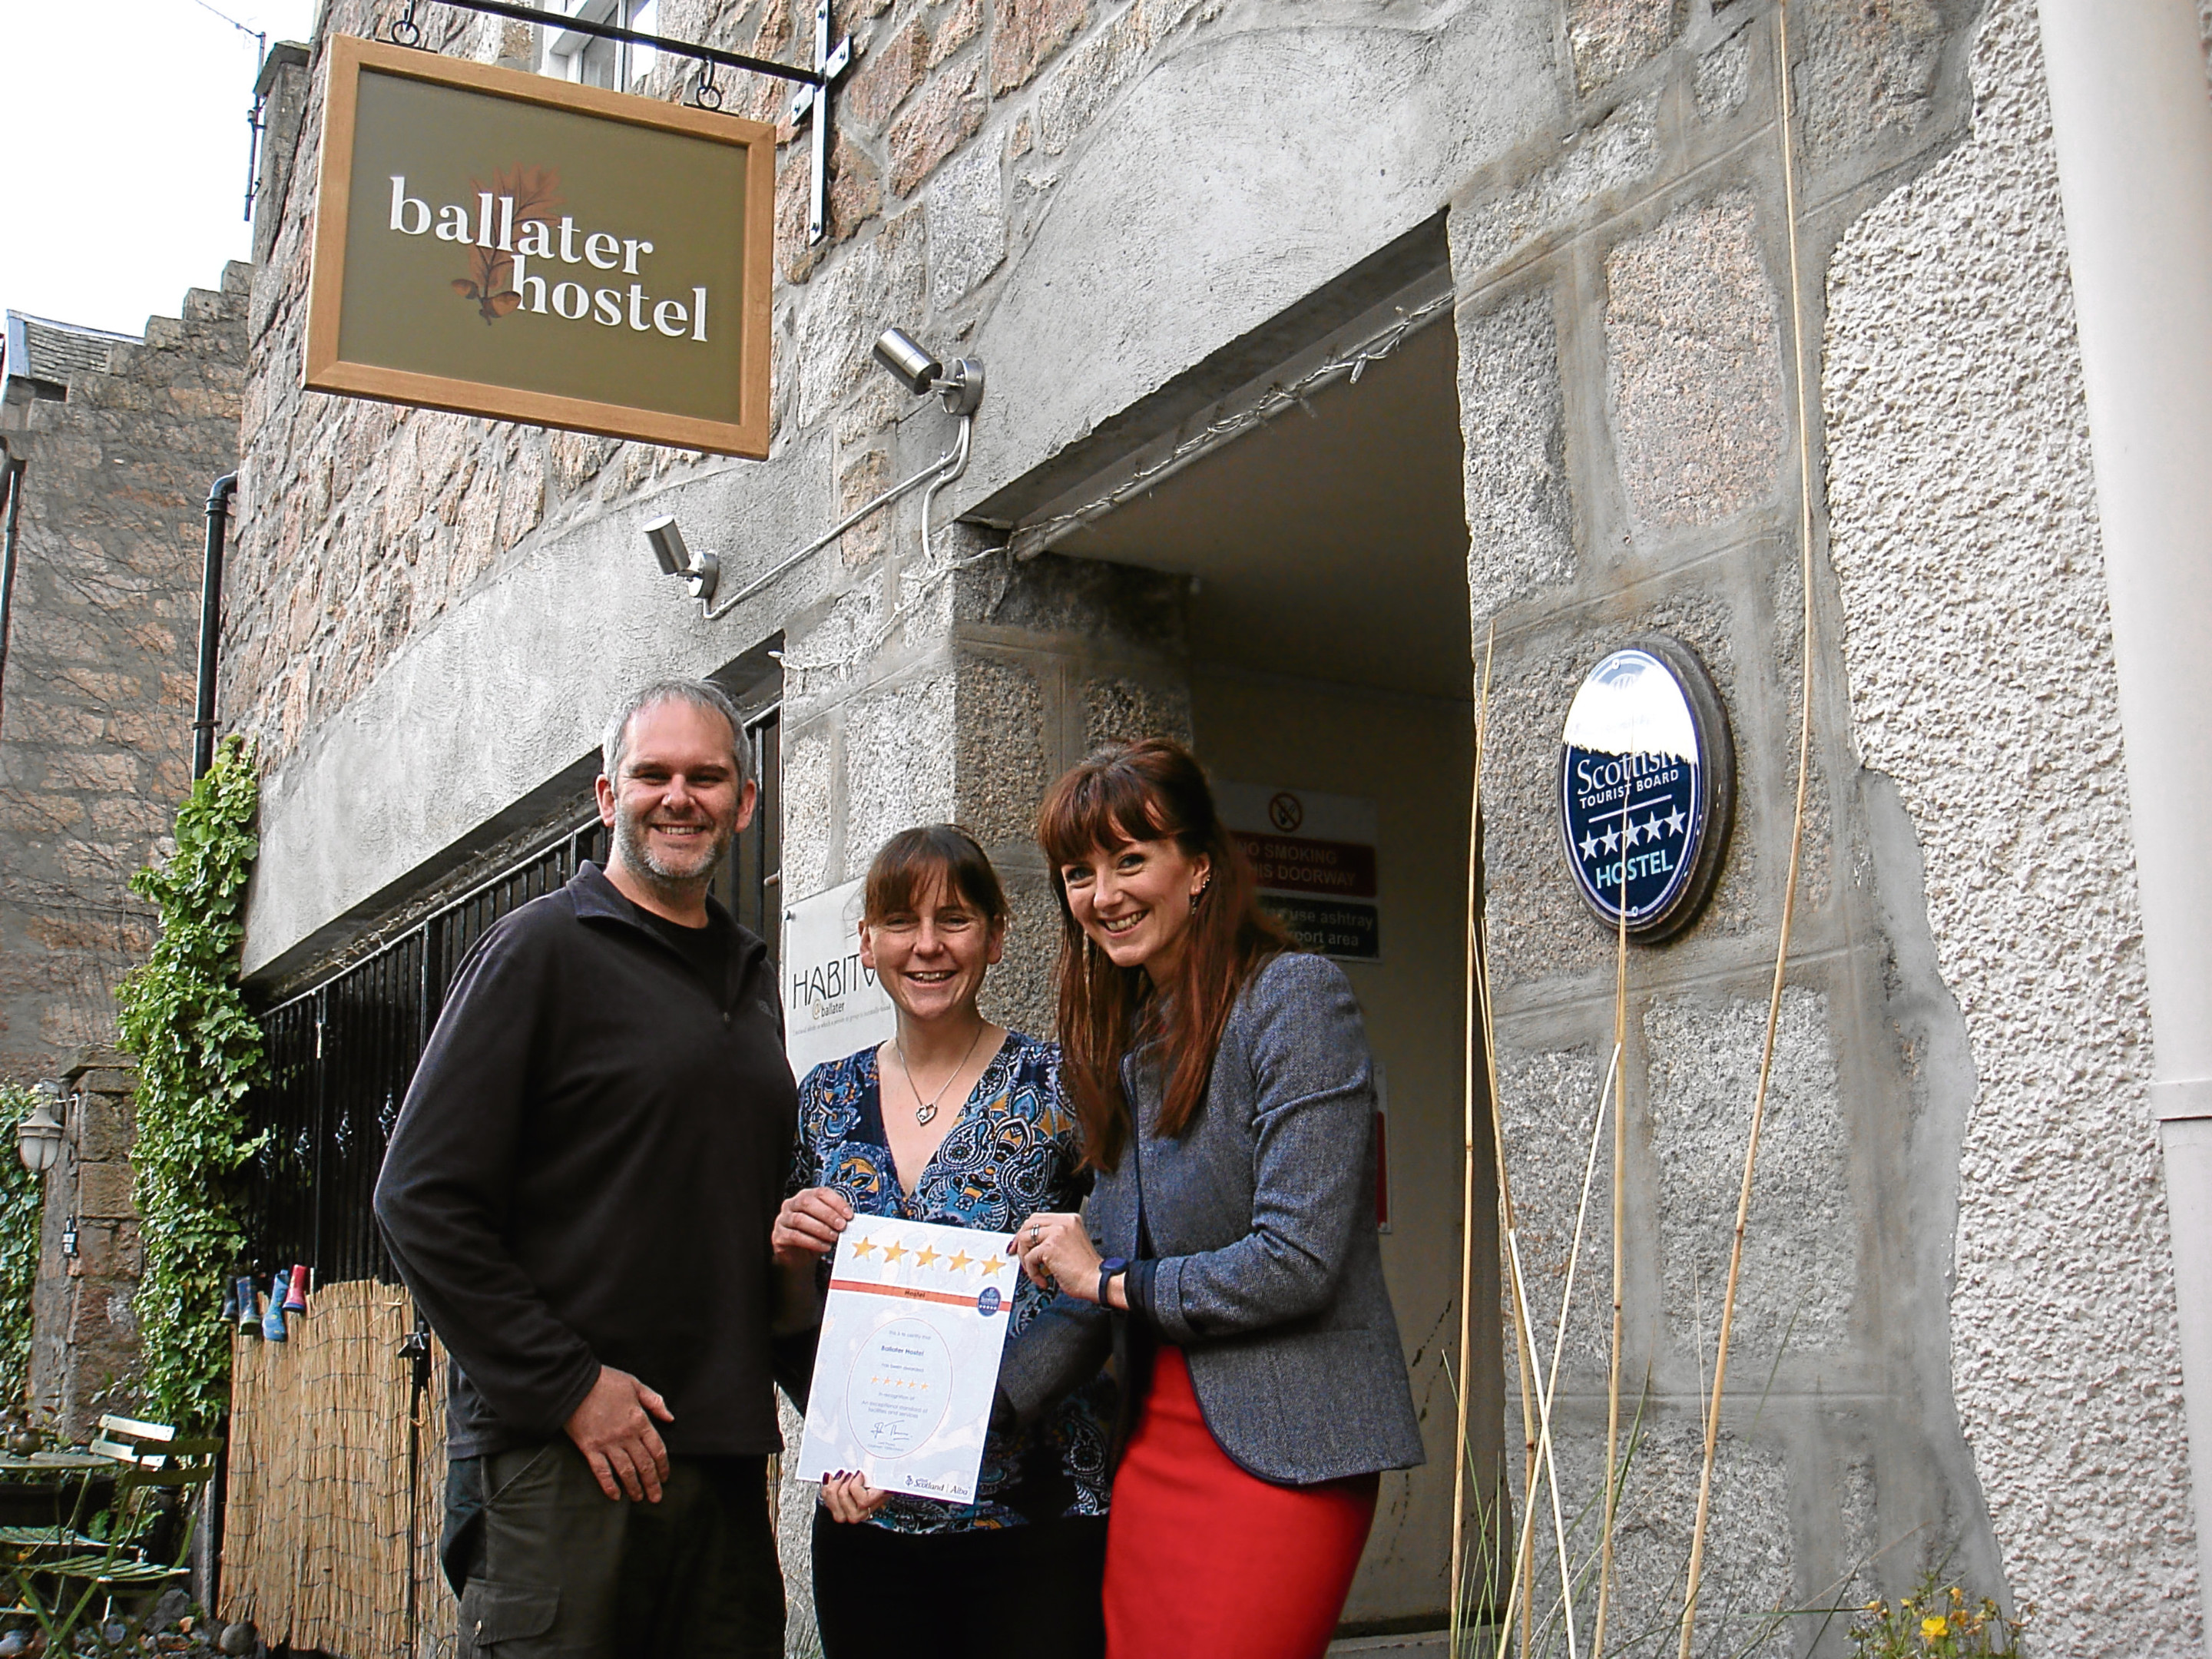 VisitScotland's Jo Robinson presents Daniel and Dominique Drewe-Martin with their certificate.